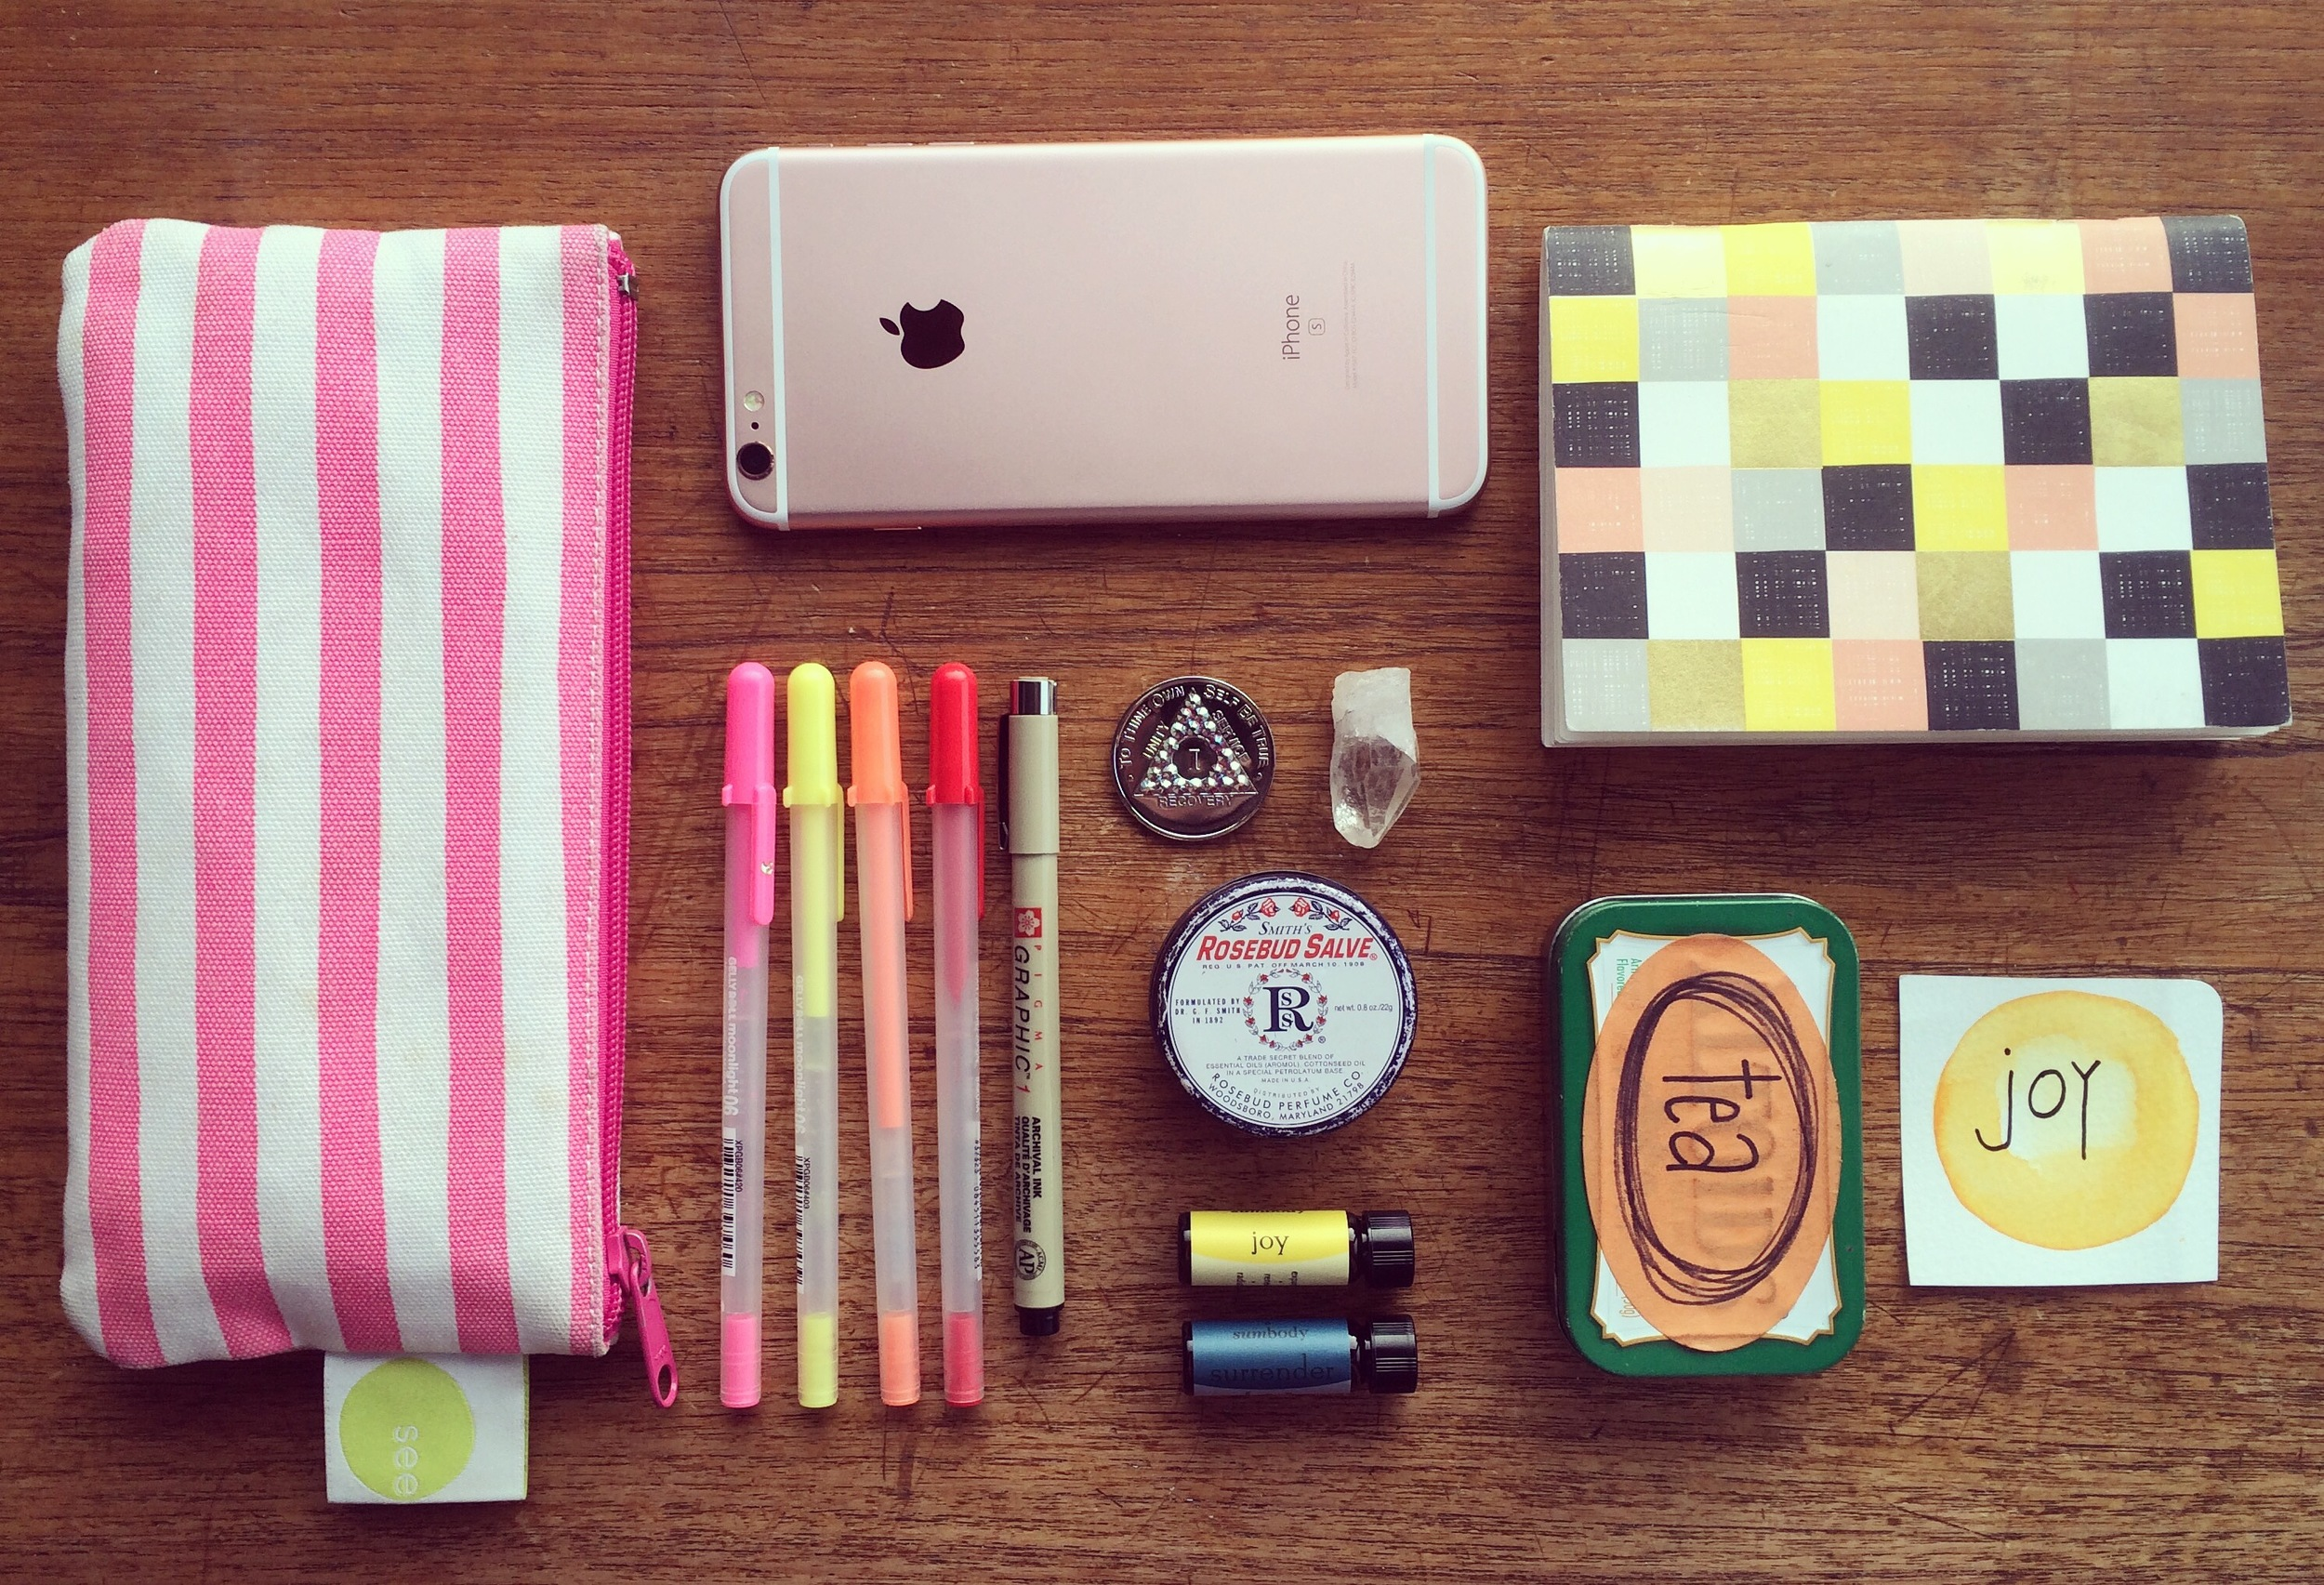 My Sobriety Toolbox :: pens, phone, 1 year sobriety chip, crystal, lip balm, essential oils, tea bags, mantra card + notebook